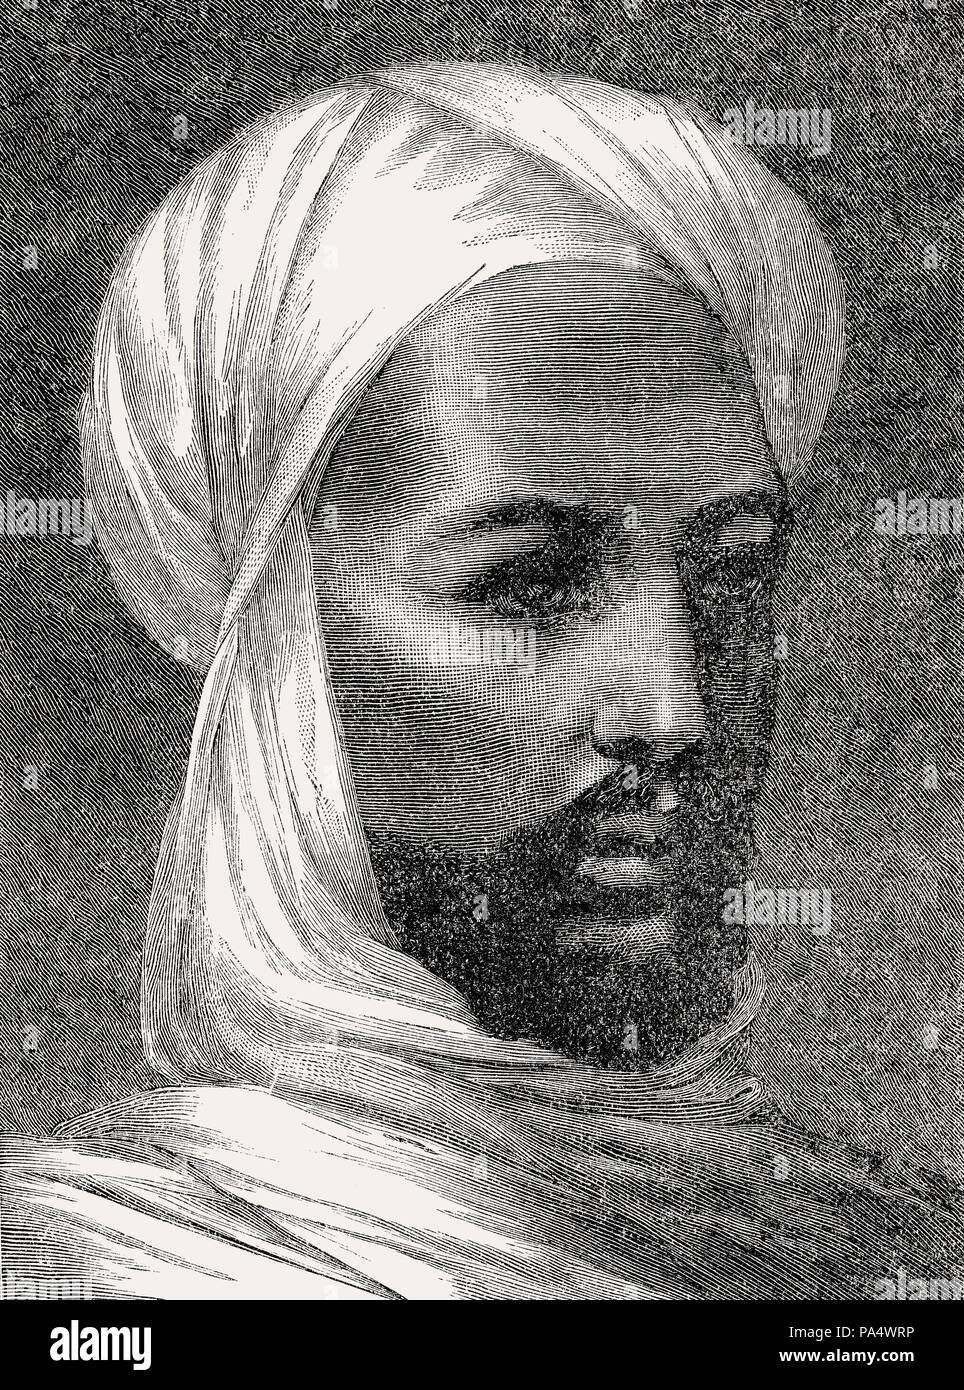 Muhammad Ahmad bin Abd Allah, 1844 – 1885, a religious leader of the Samaniyya order in Sudan, From British Battles on Land and Sea, by James Grant - Stock Image